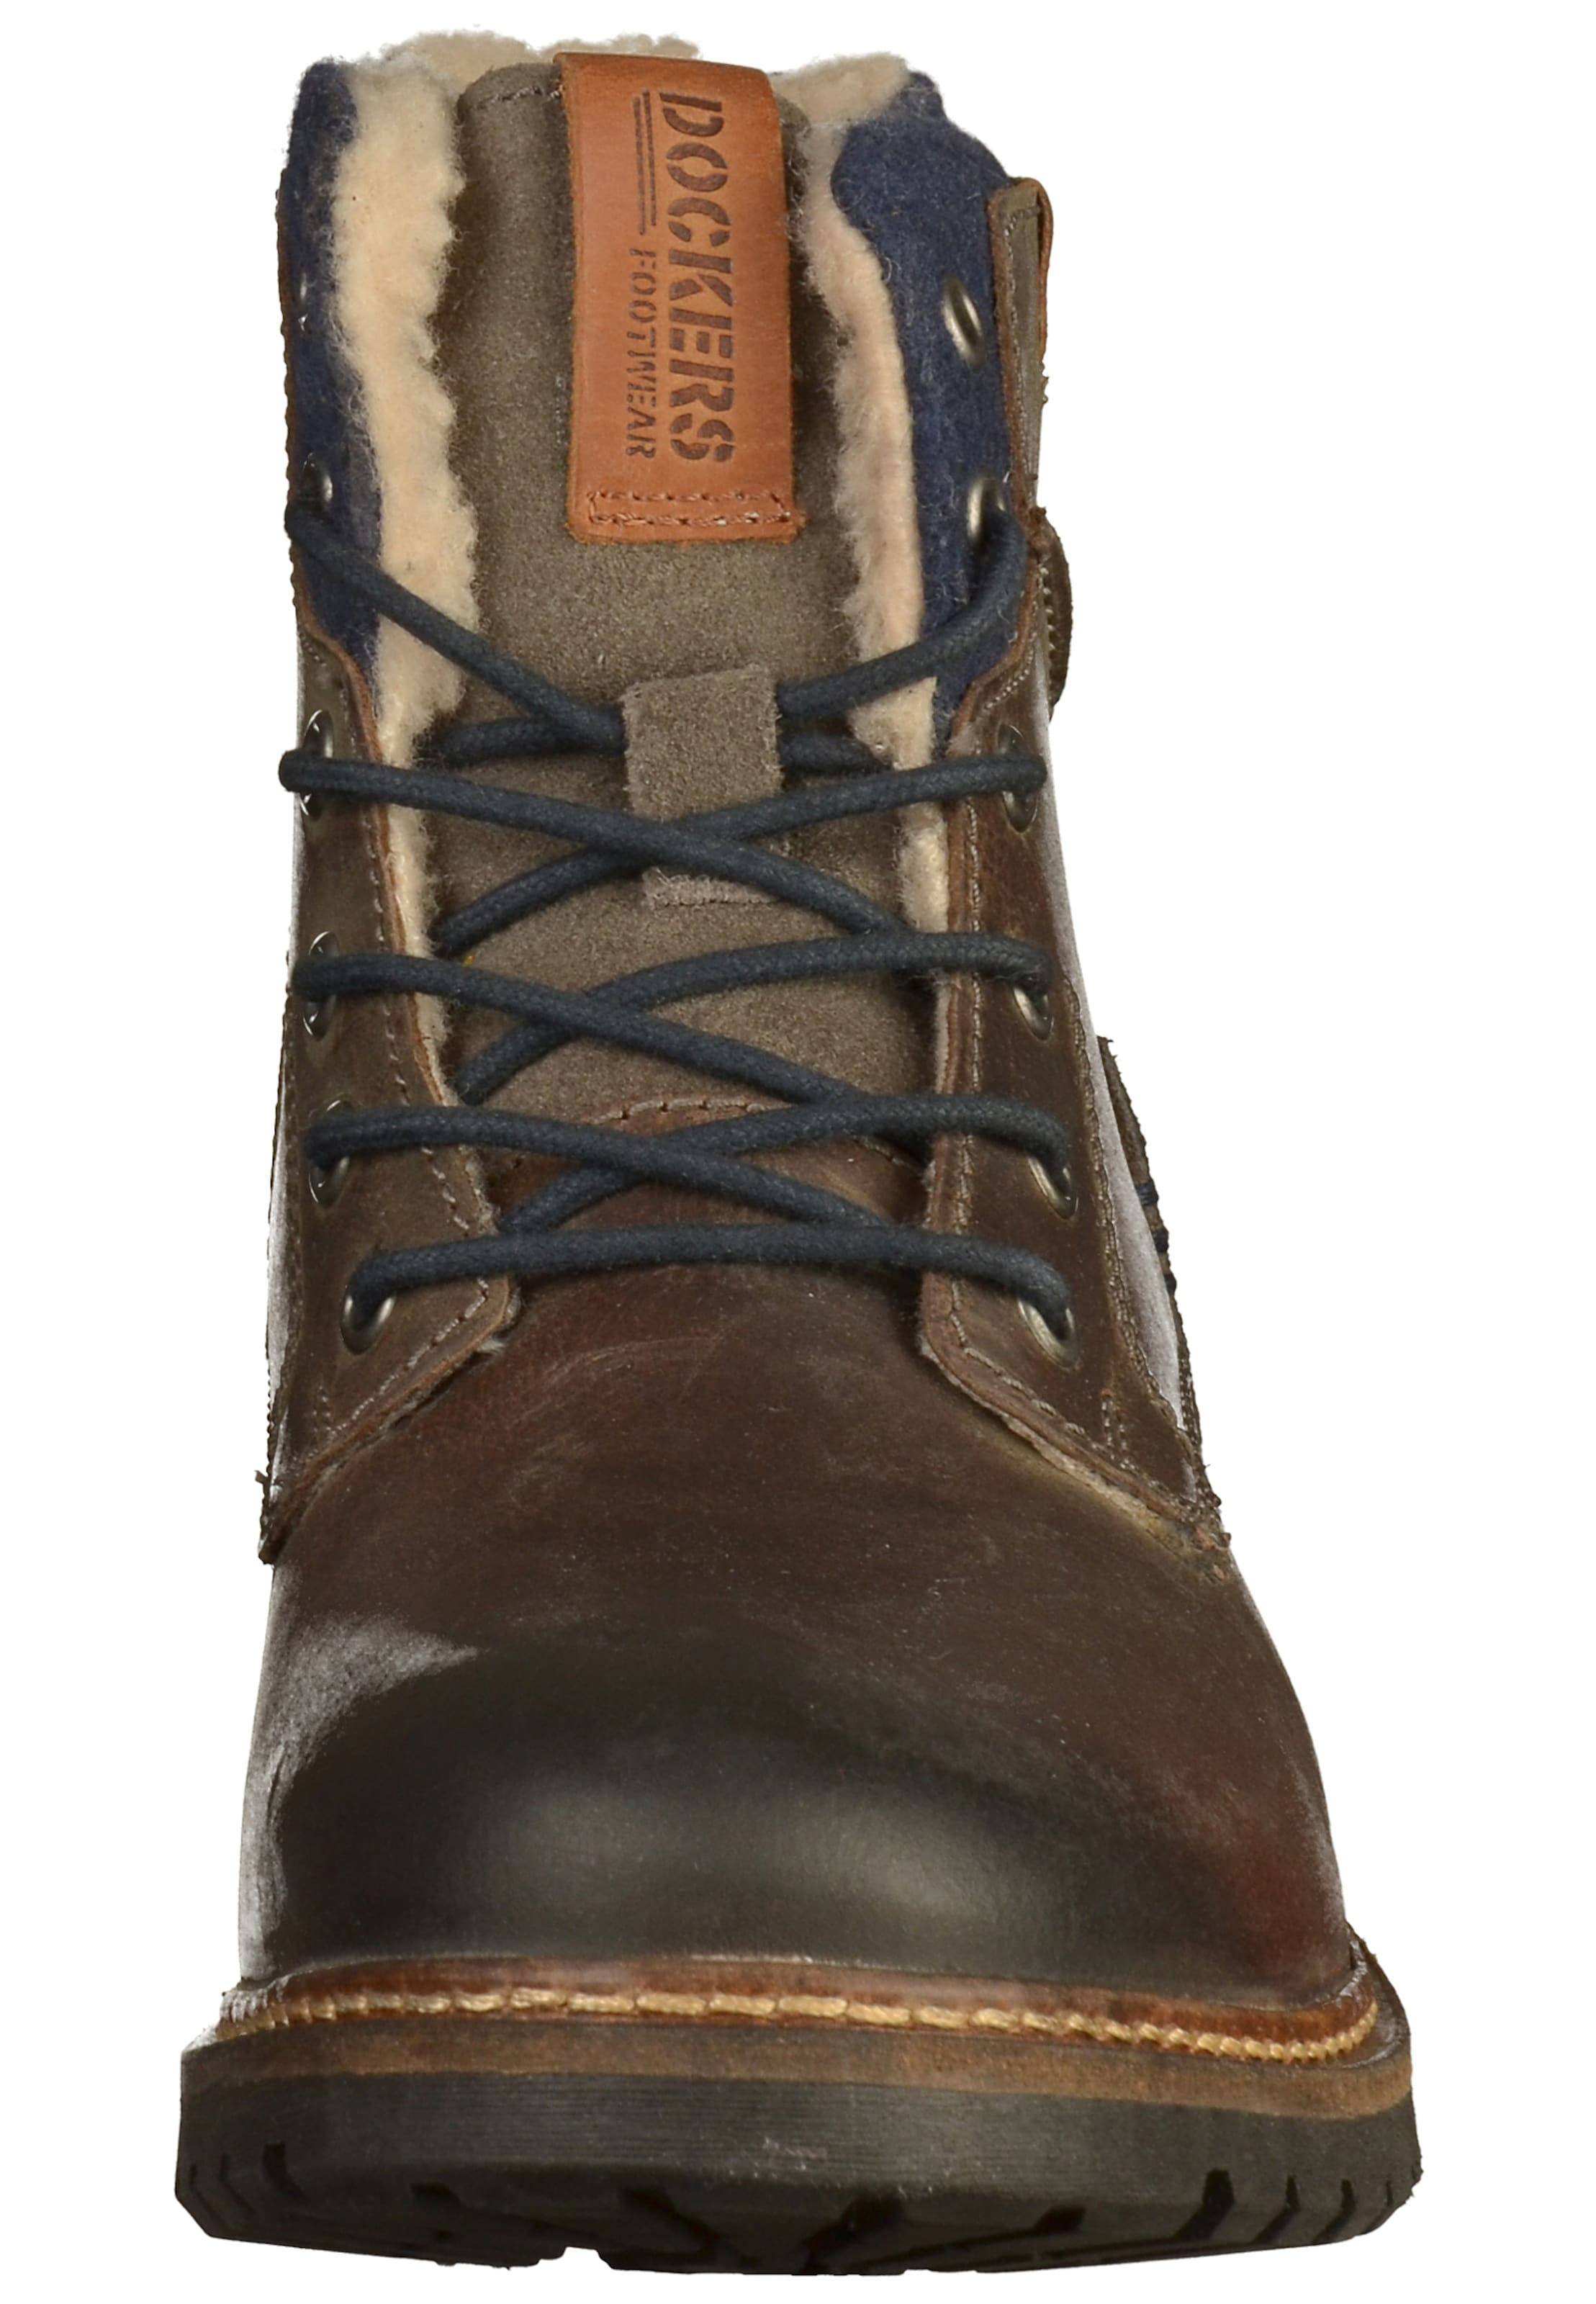 Lacets Bottes Bleu By En Brocart Orange Dockers Gerli FoncéMarron À RAcq3L54j